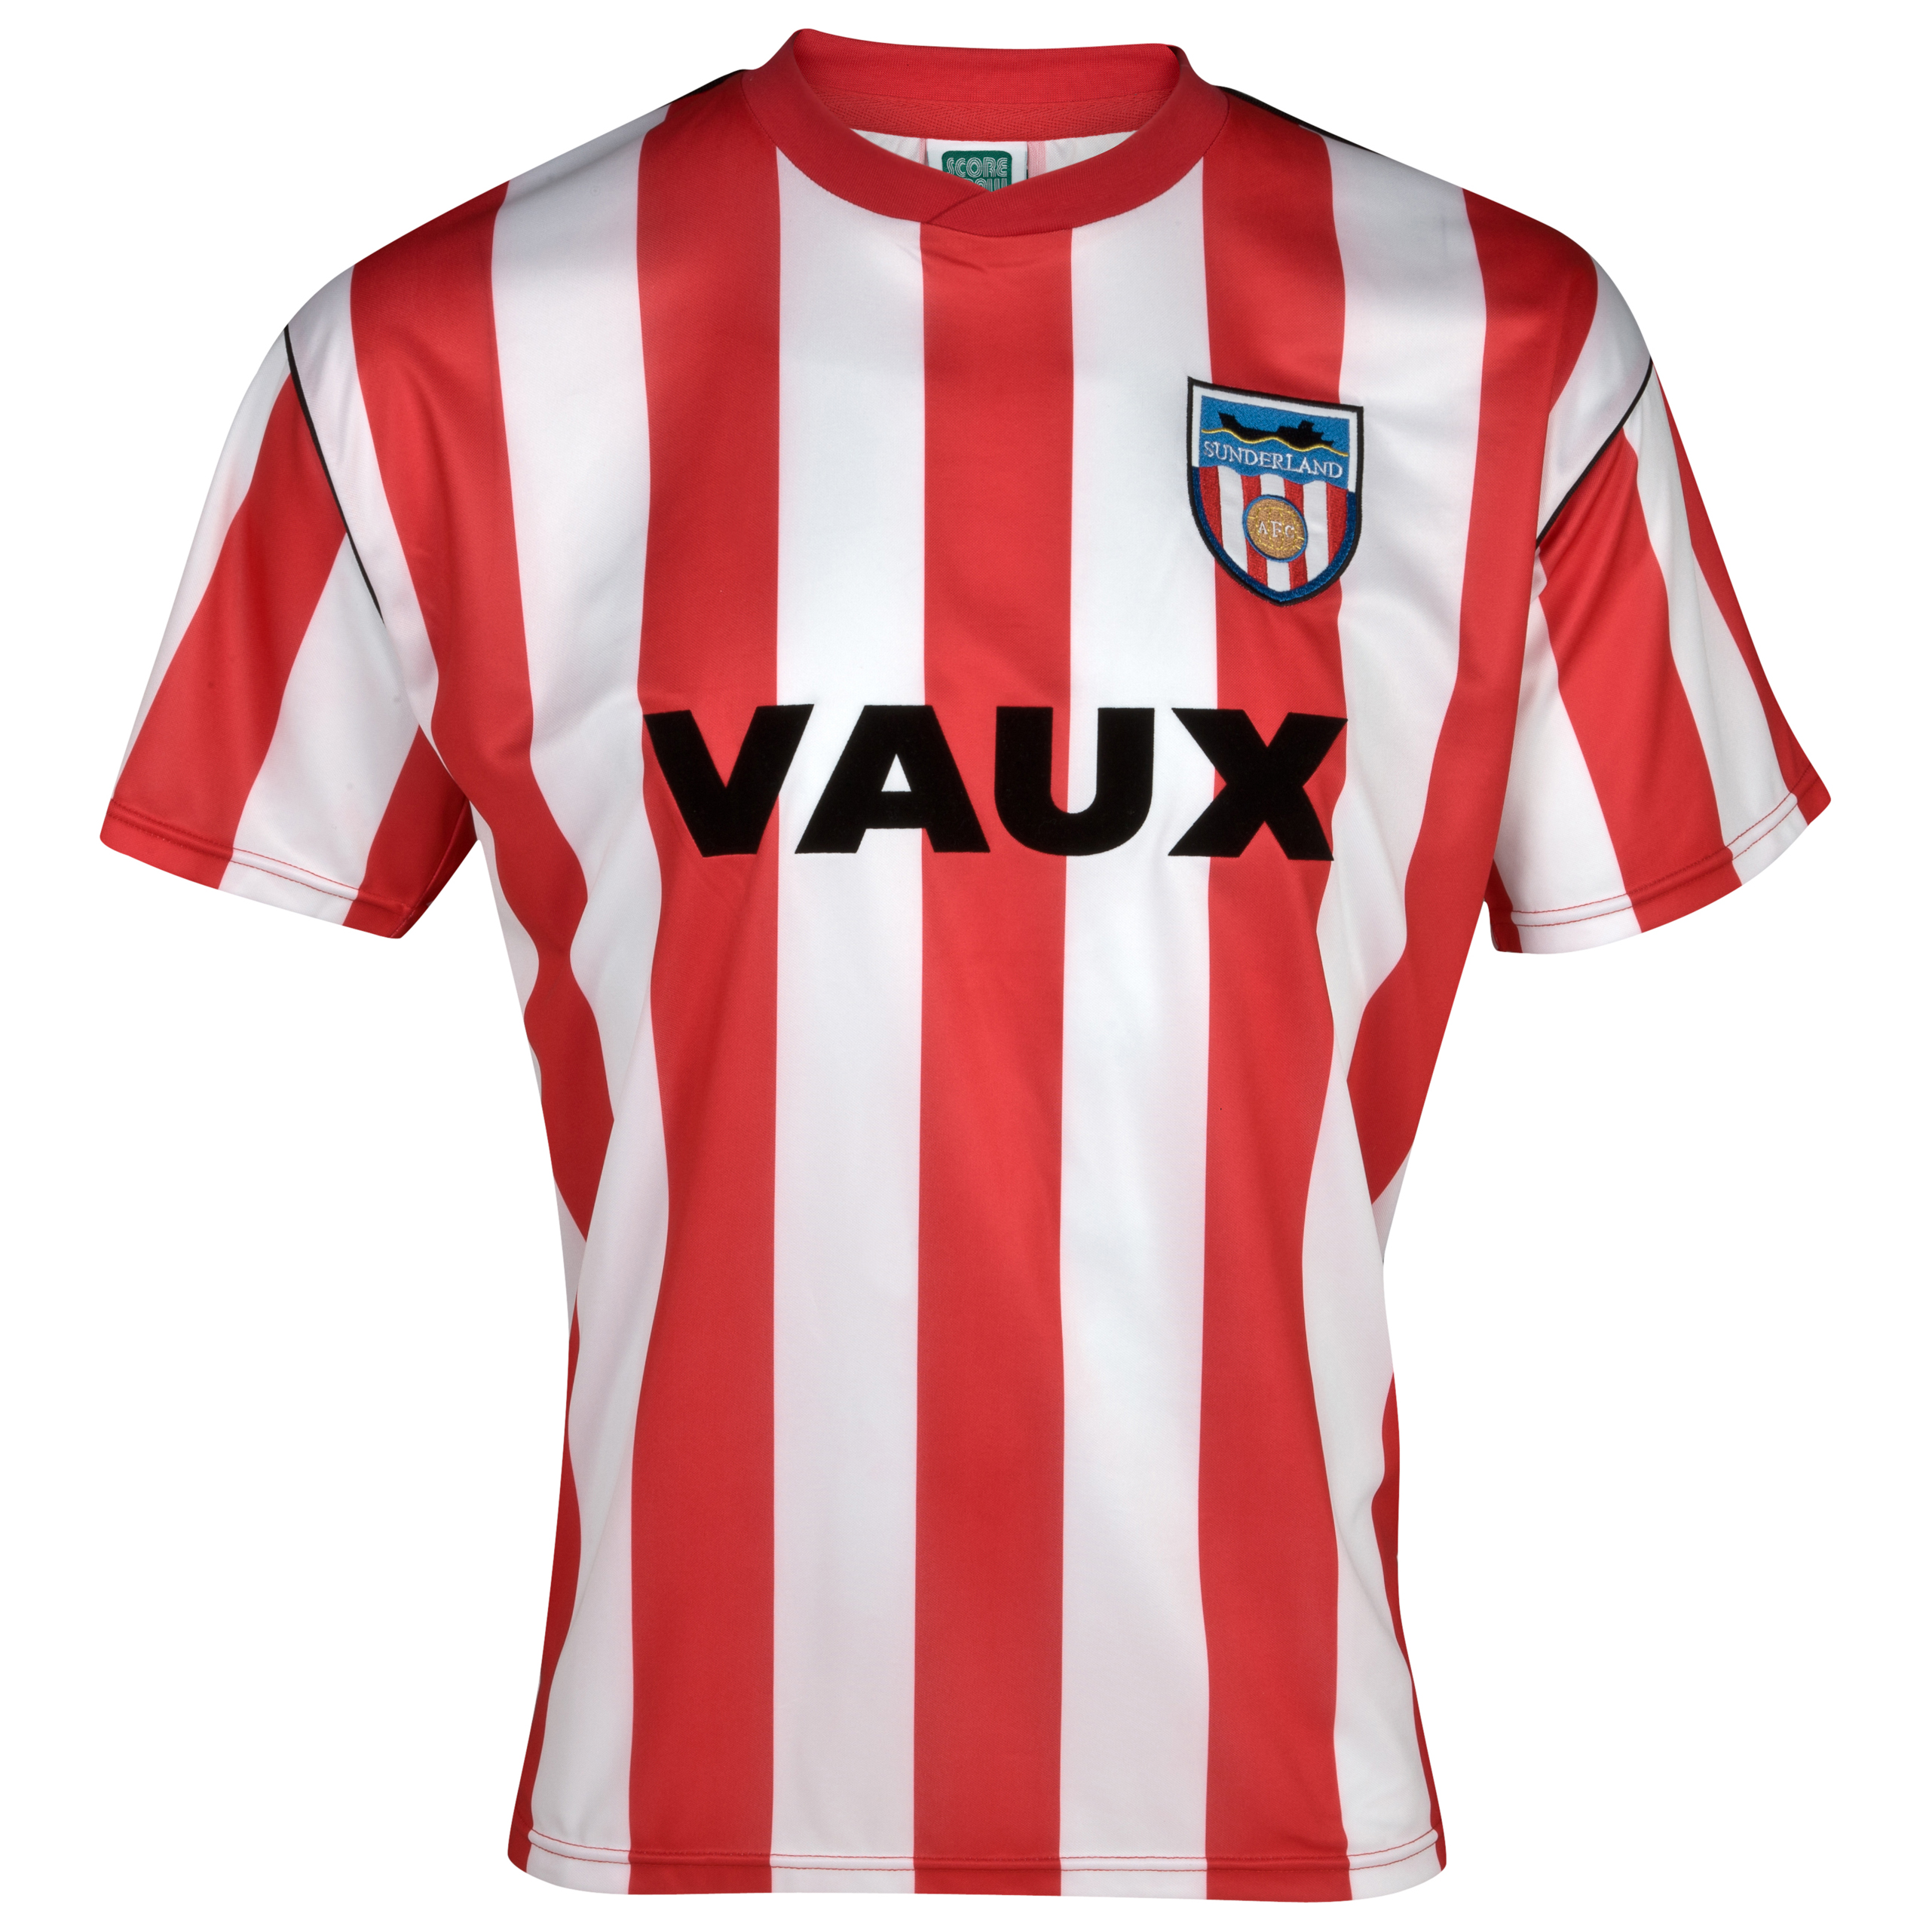 Sunderland 1990 Home Shirt